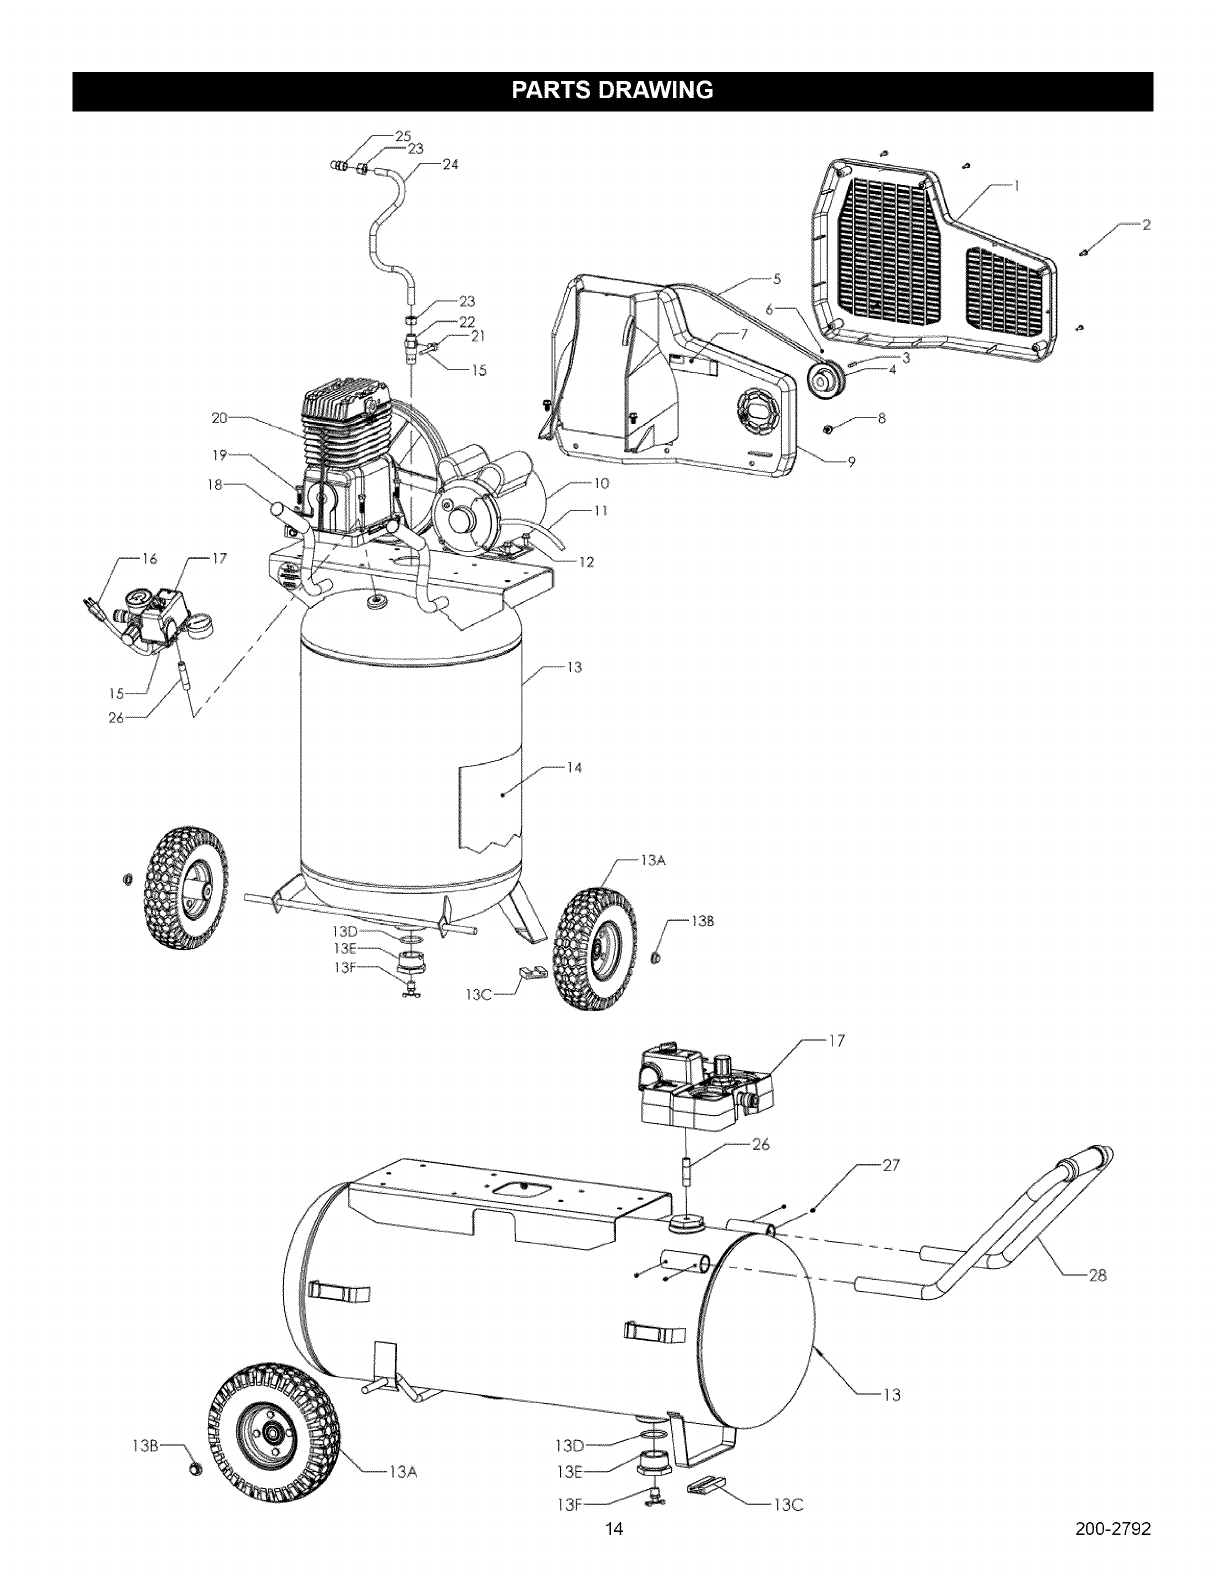 Page 14 of Craftsman Air Compressor 921.16474 User Guide